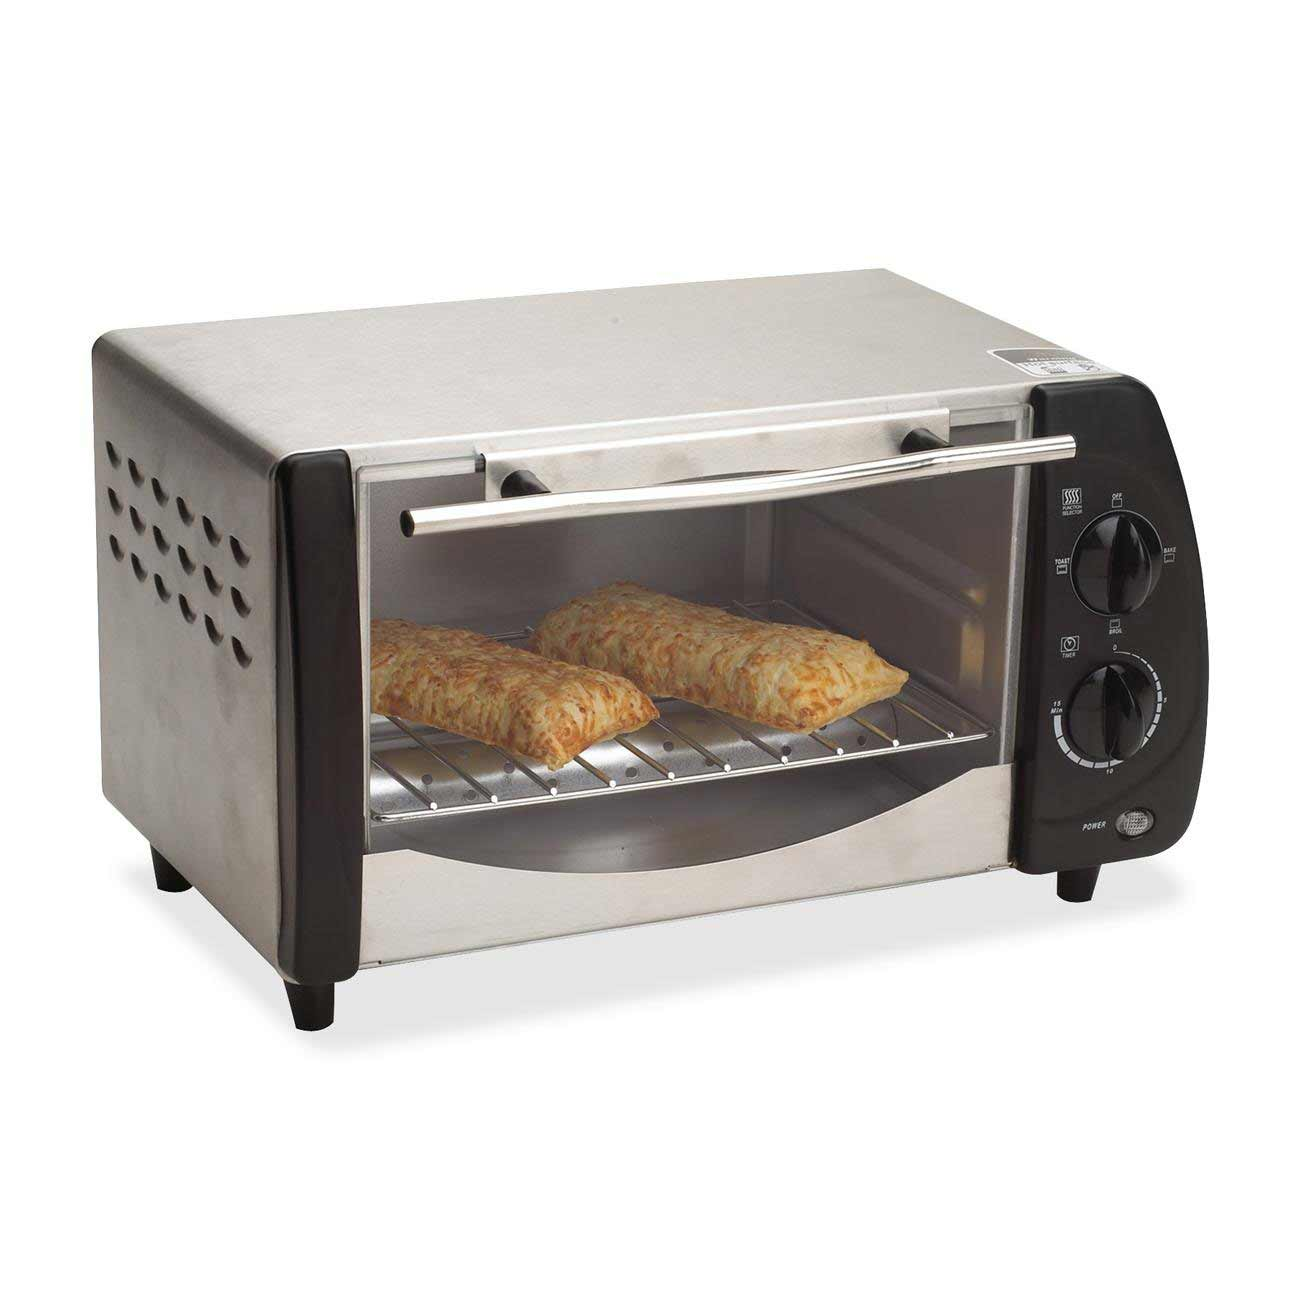 Avanti AVAT9 Best Small Toaster Oven